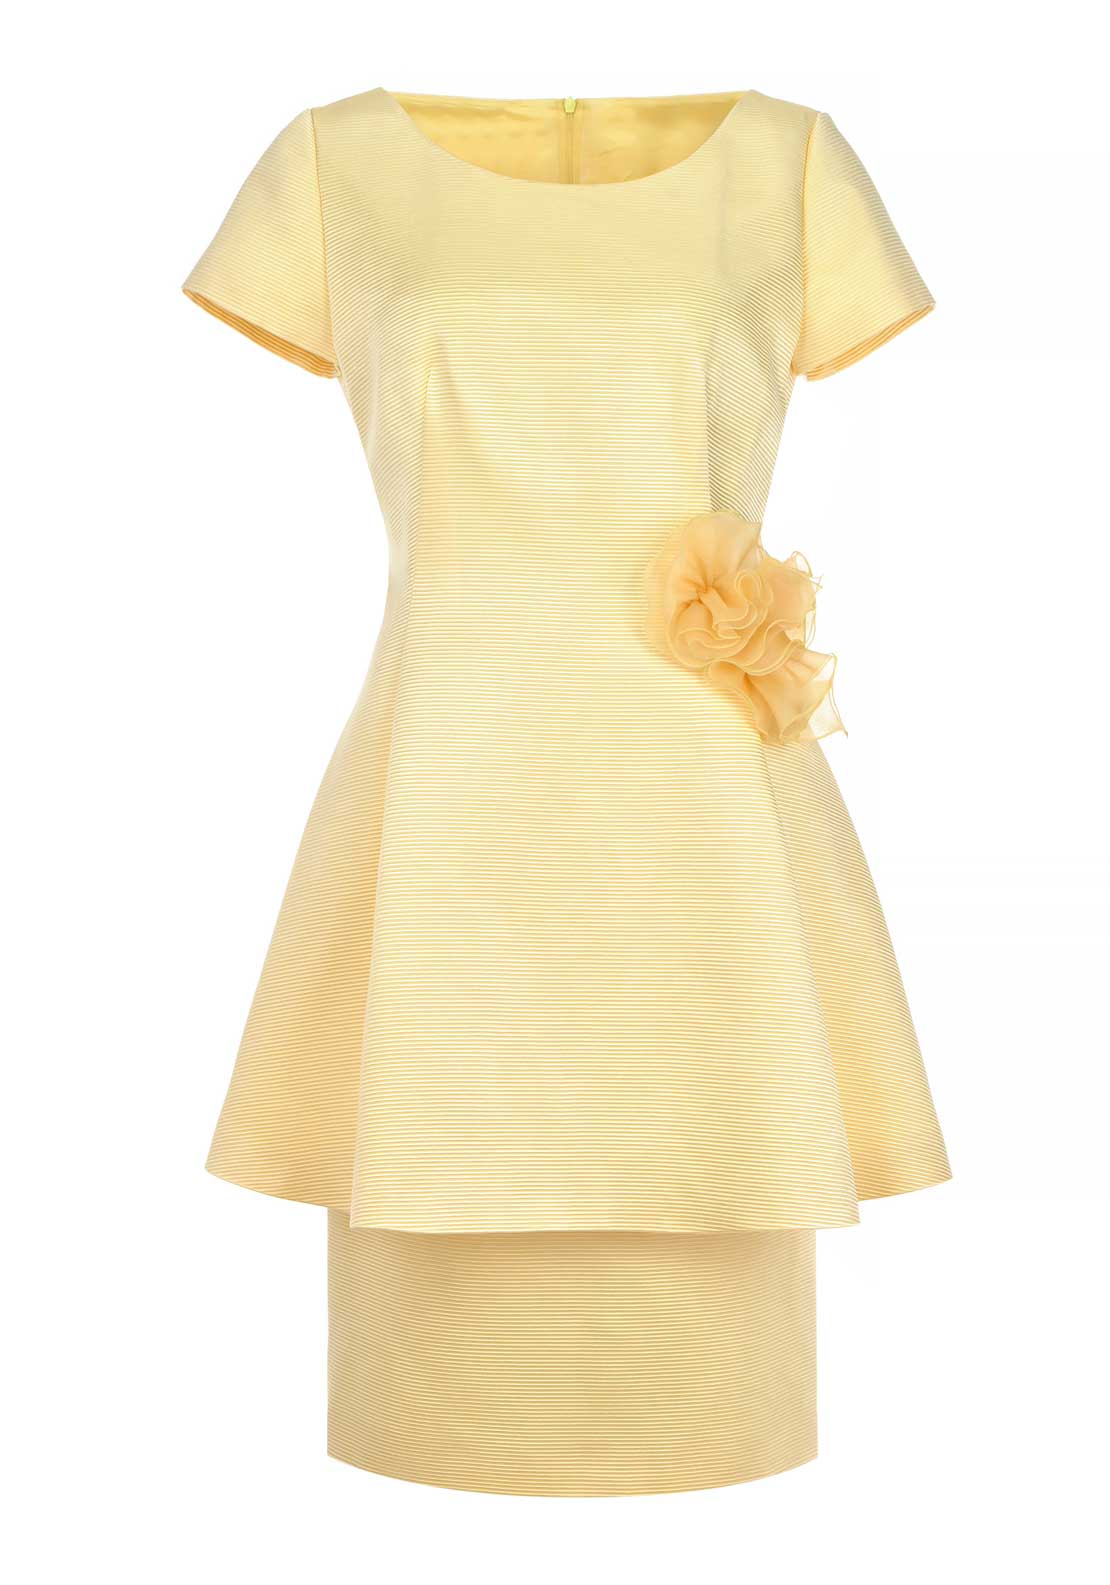 Teresa Ripoll Top and Skirt Outfit, Yellow